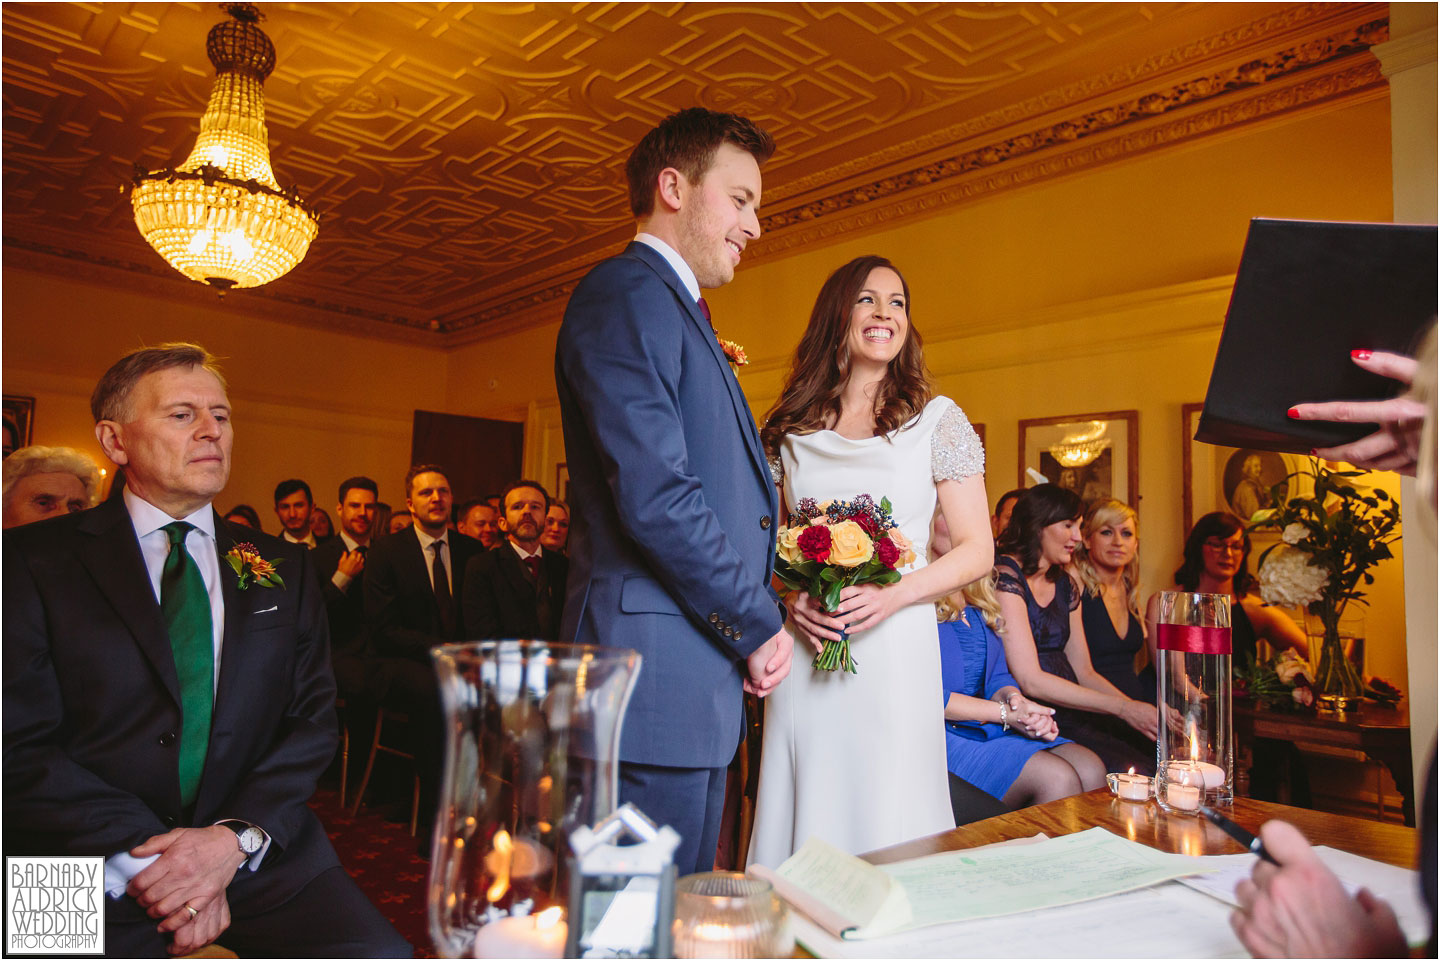 A Crow Hill wedding ceremony photo at a Spring ceremony at a Marsden West Yorkshire Country House by Photographer Barnaby Aldrick